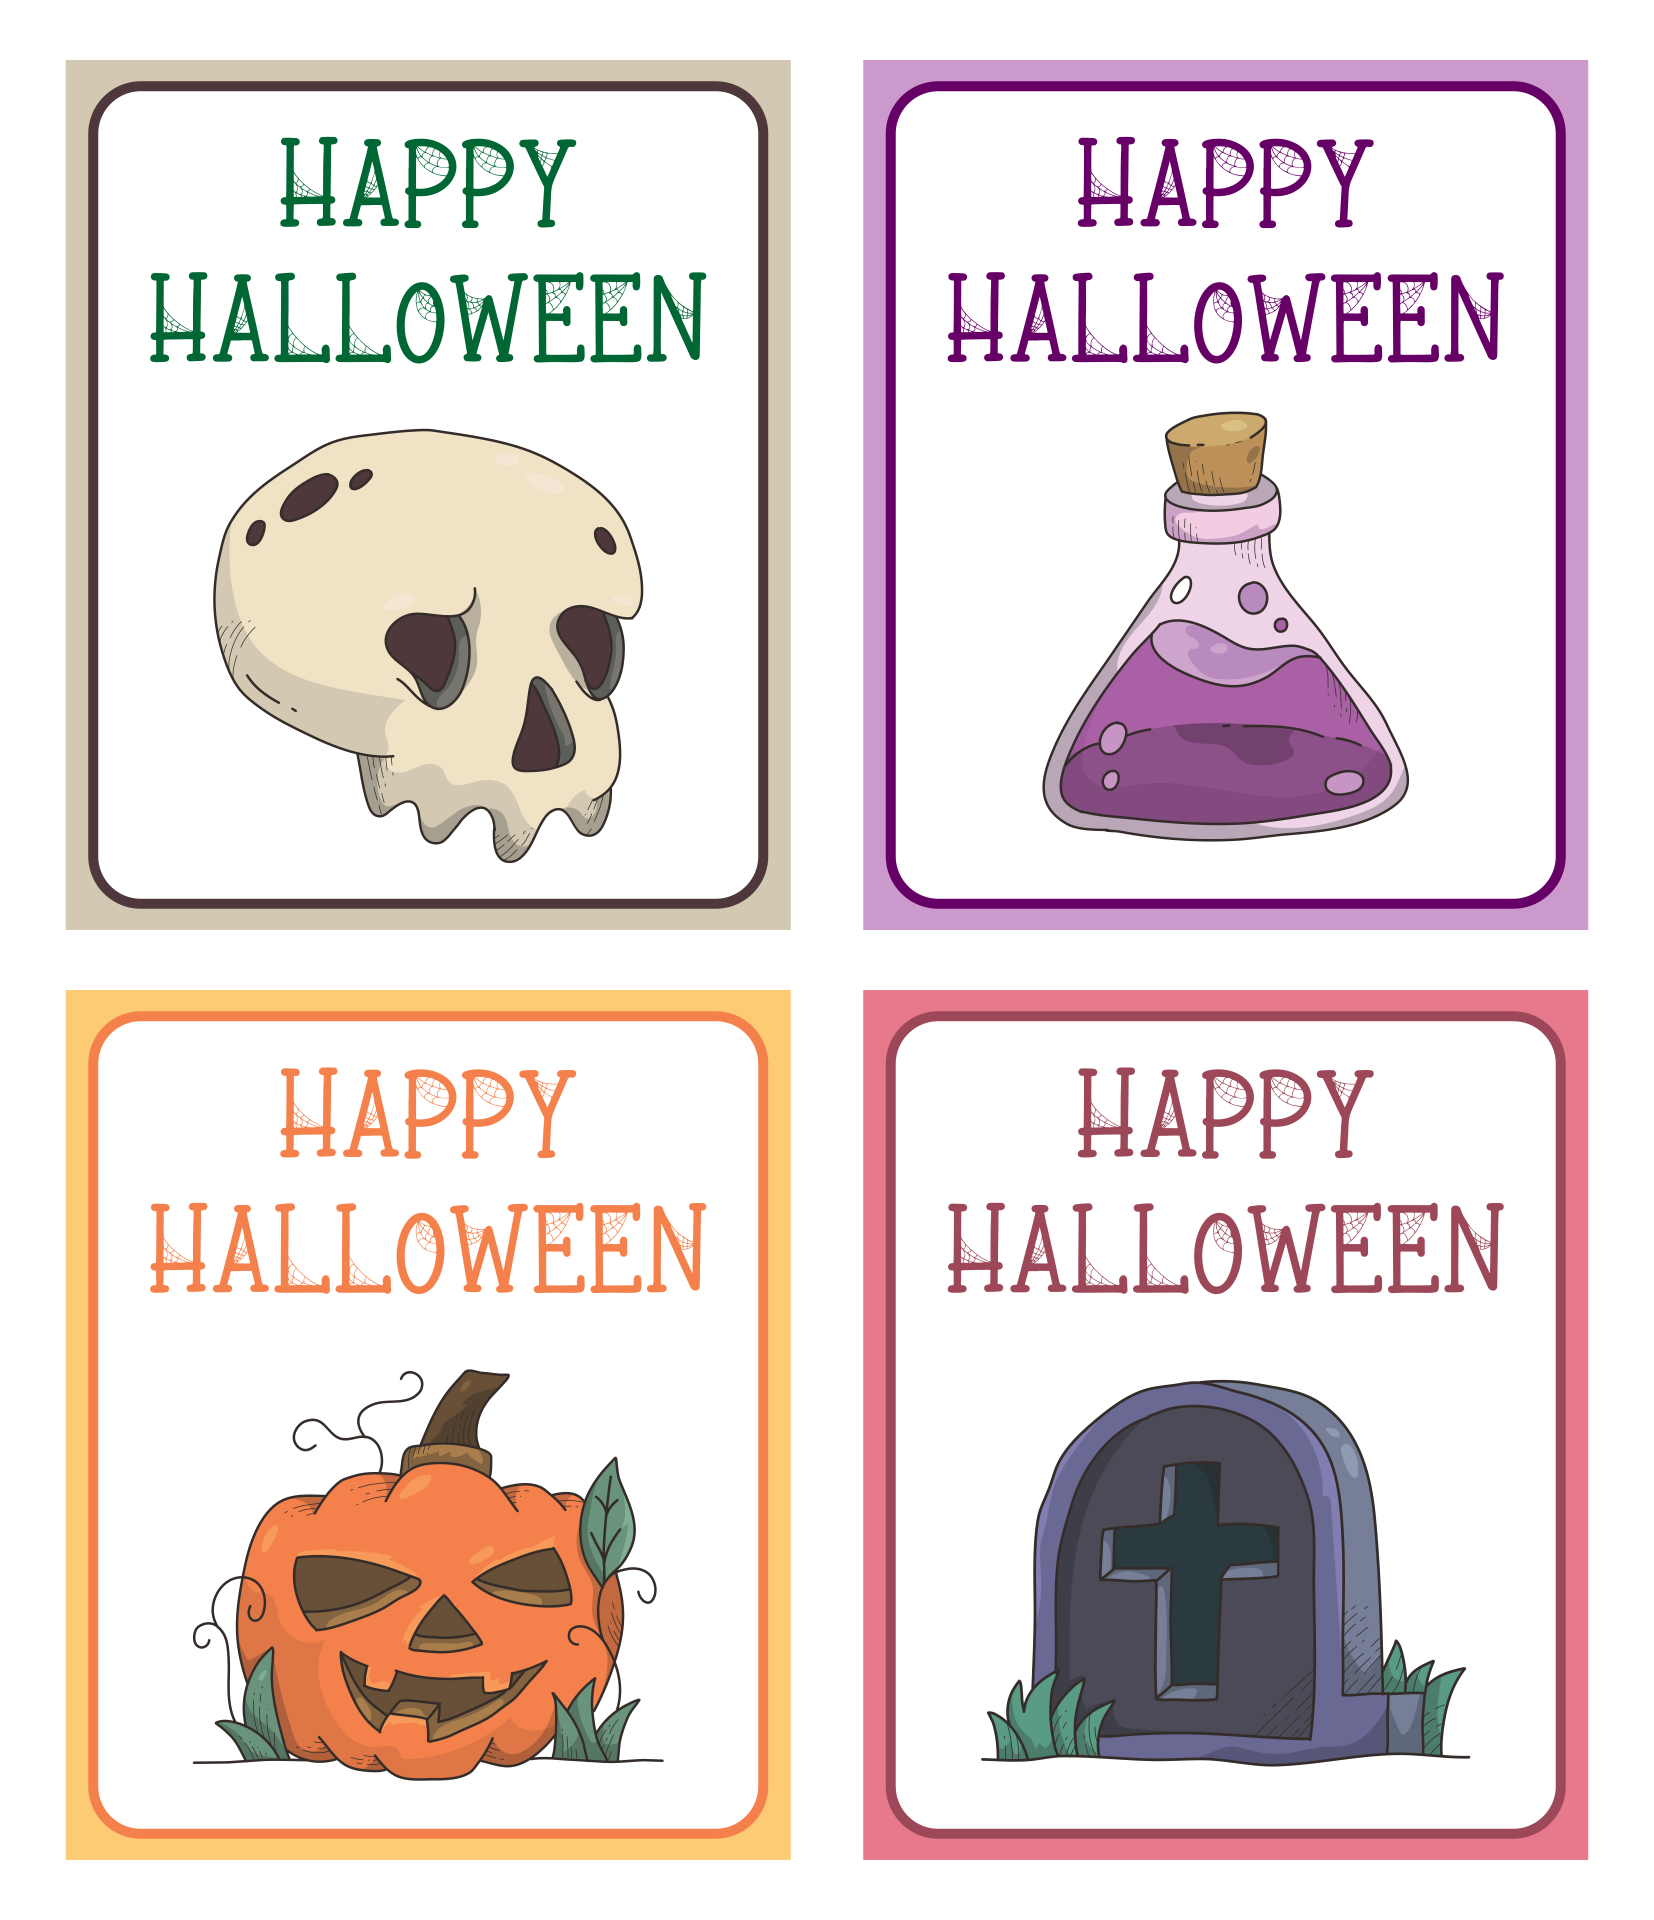 8 Images of Happy Halloween Printable Cards